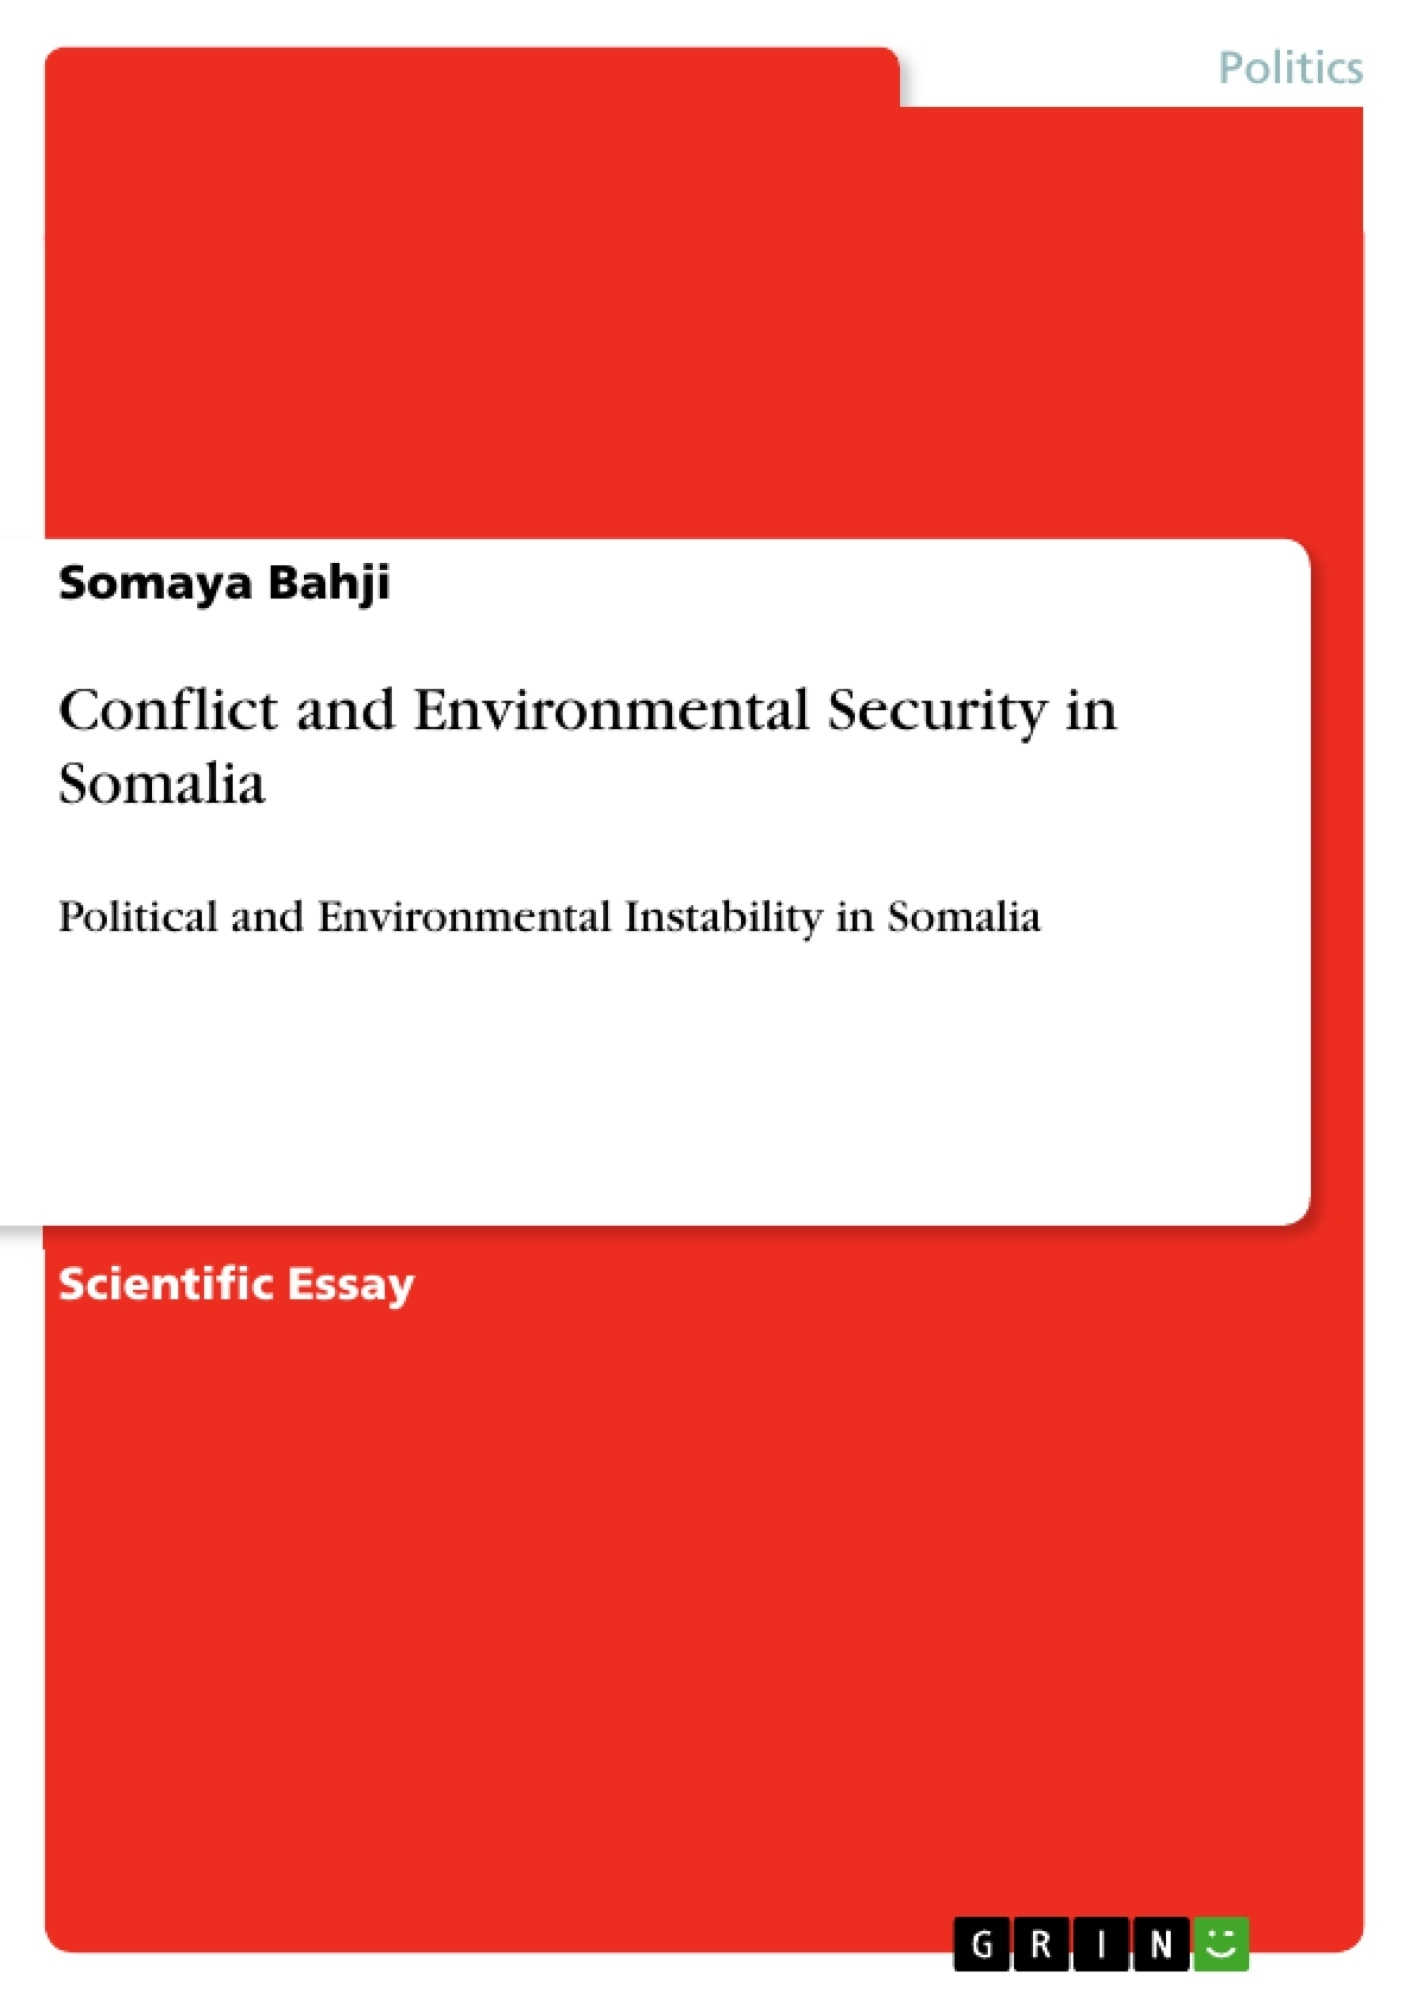 Title: Conflict and Environmental Security in Somalia